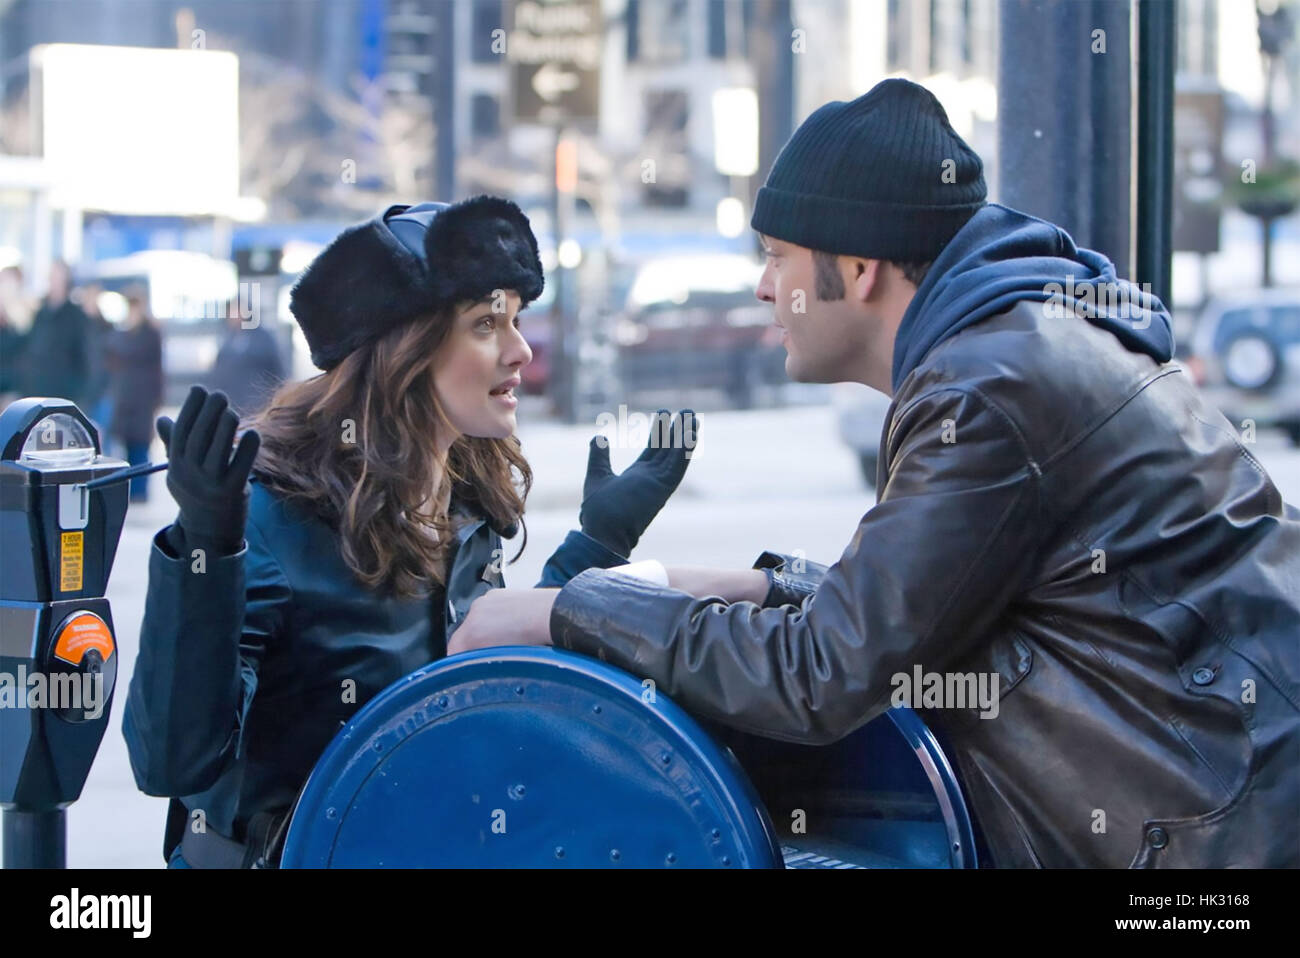 FRED CLAUS 2007 Warner Bros film with Rachel Weisz and Vince Vaughn - Stock Image